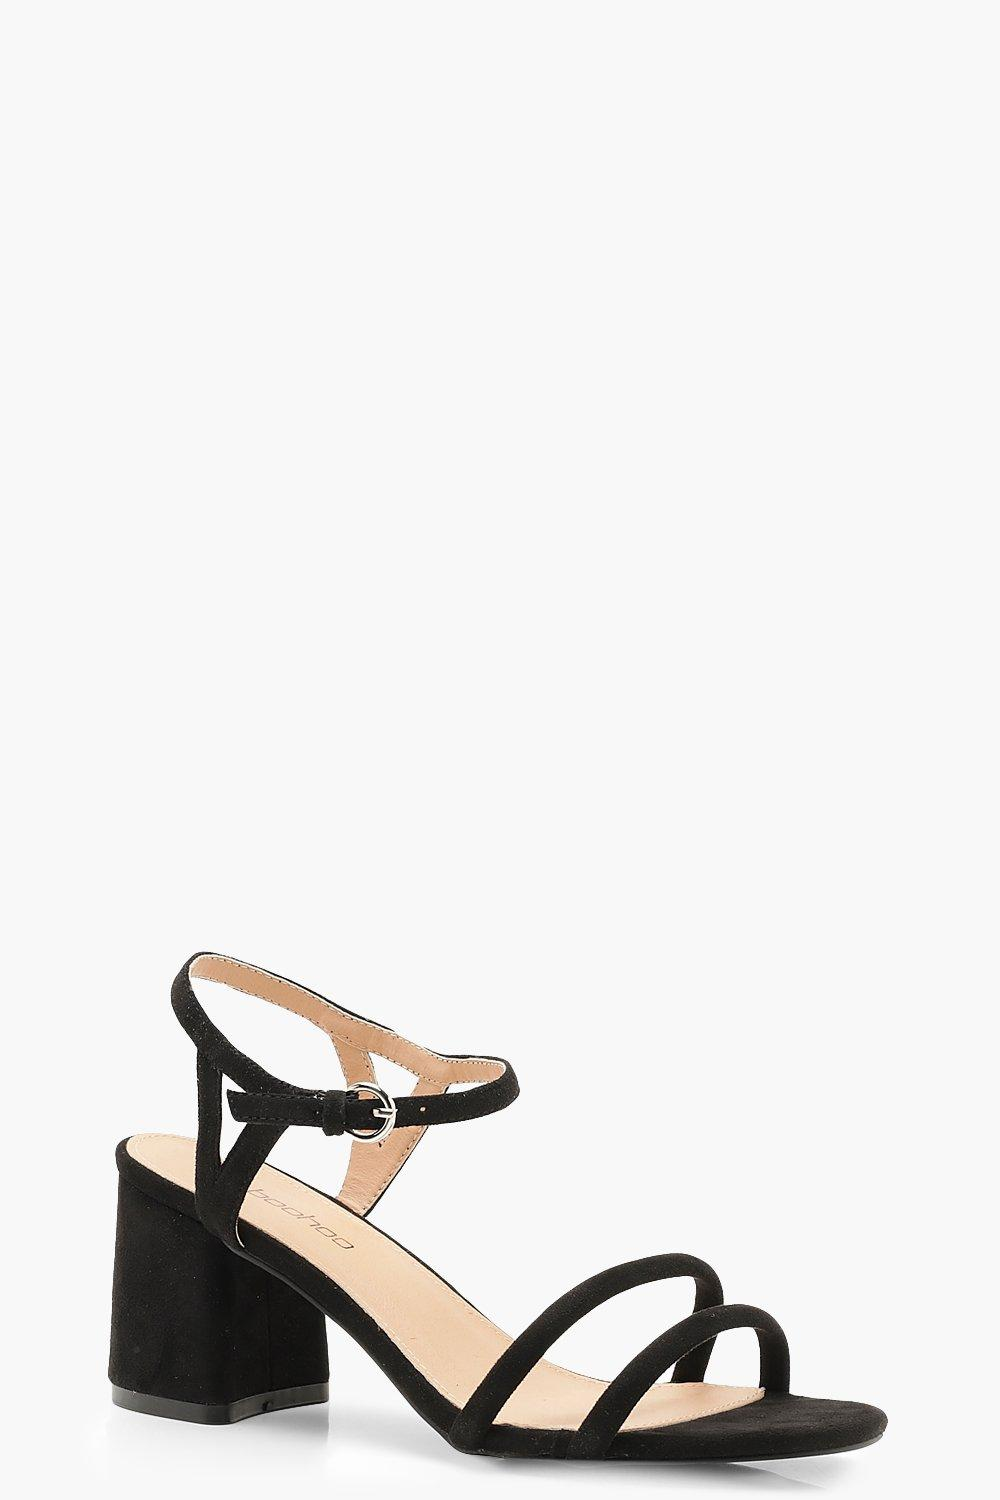 fdc66f385c16b Womens Black Extra Wide Fit Double Strap 2 Part Heels. Hover to zoom